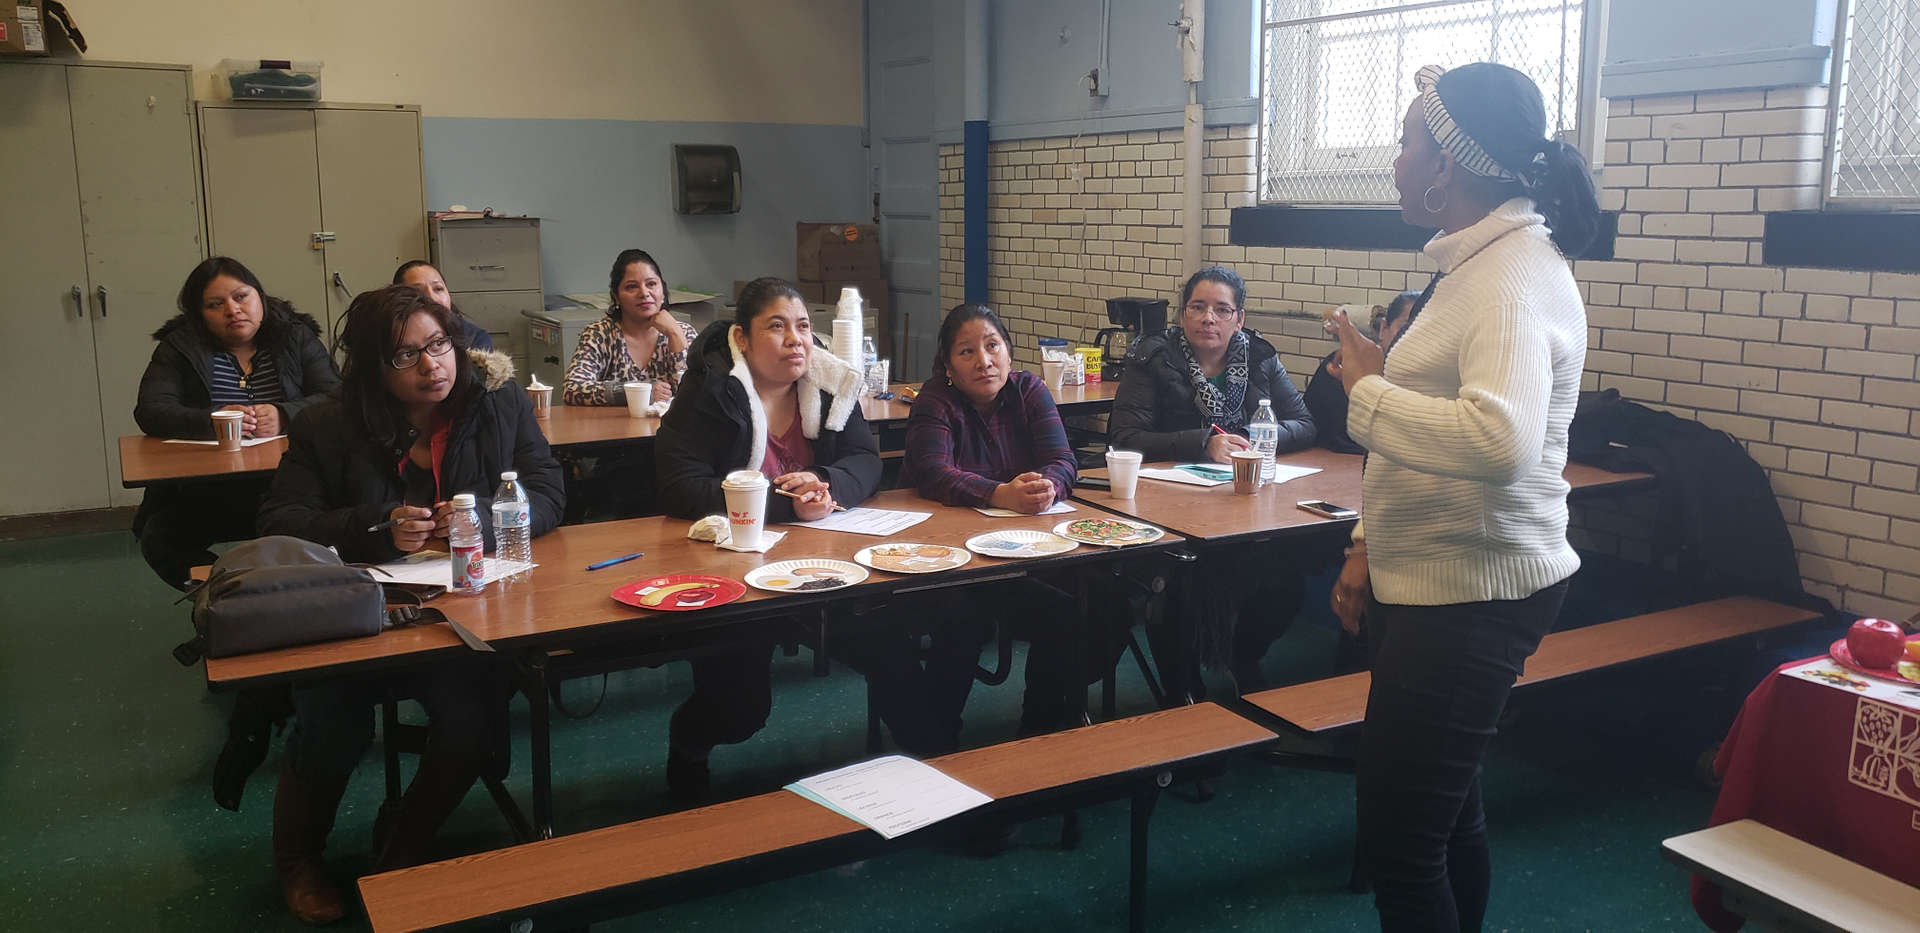 Parents learning about nutrition at PS 14